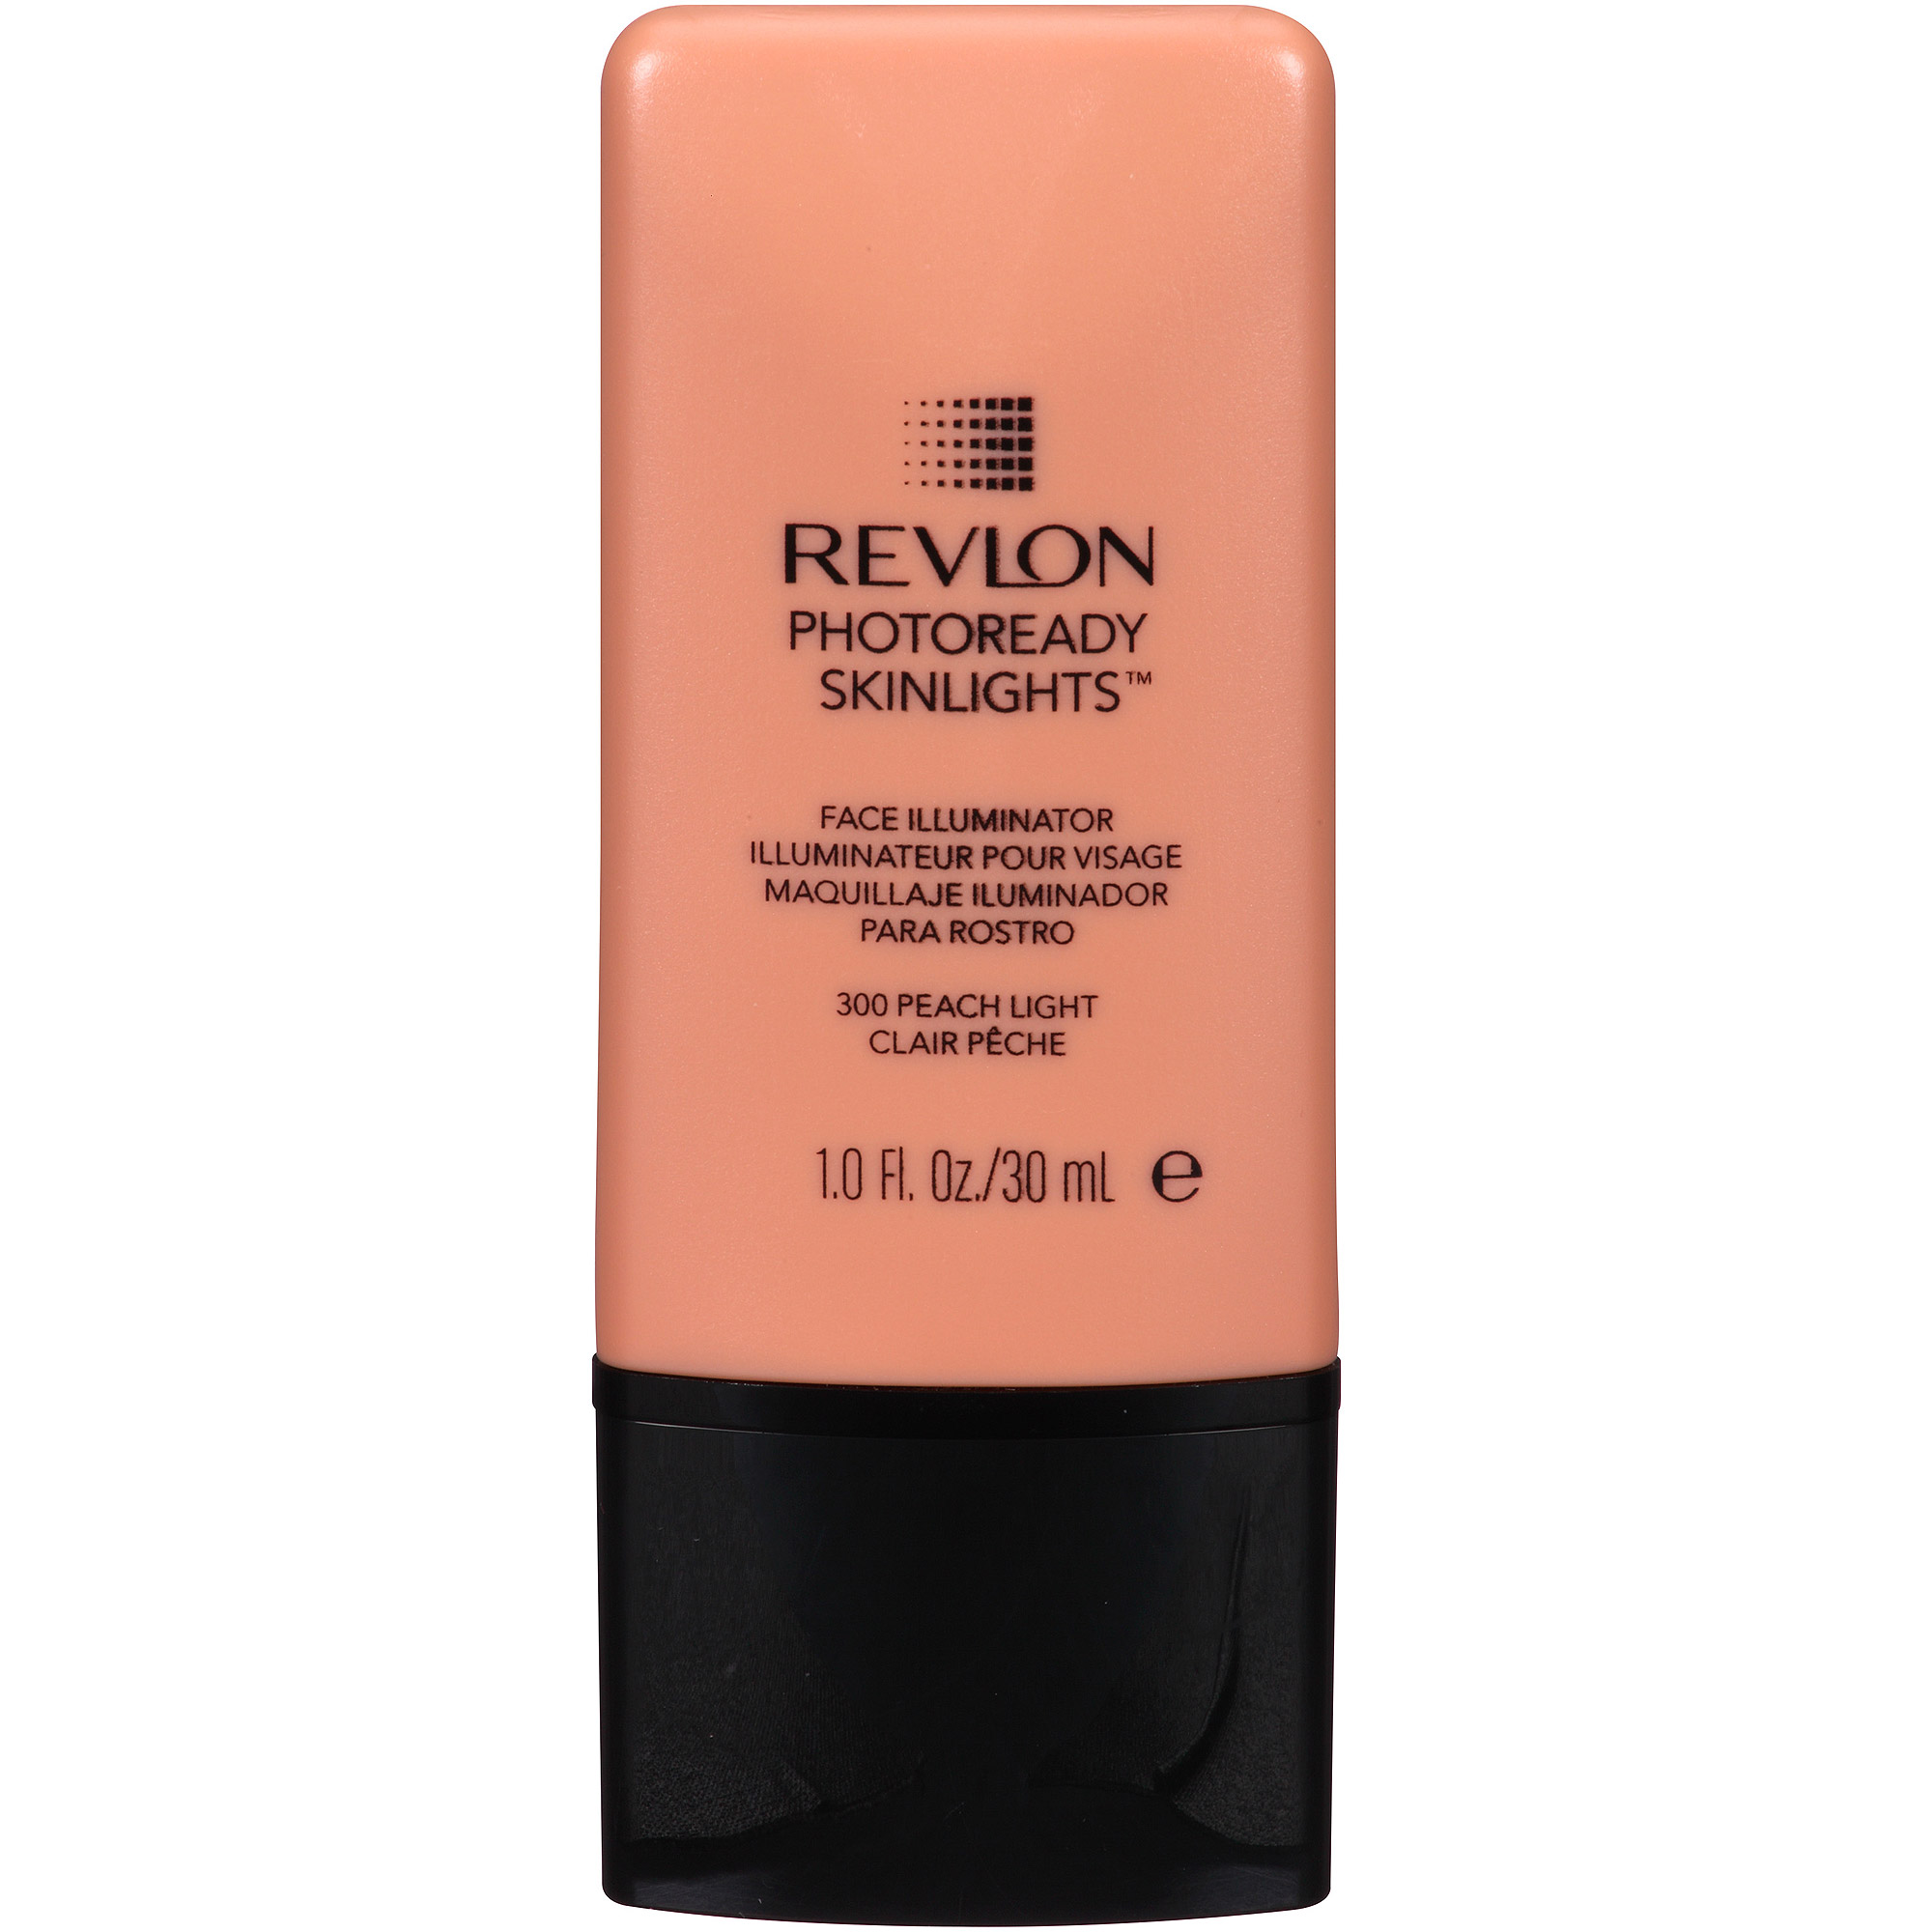 Revlon Revlon PhotoReady Skinlights Face Illuminator, 1 oz Neutrogena Clear Face Break-Out Free Liquid-Lotion Sunblock SPF 55 3 oz (Pack of 4)